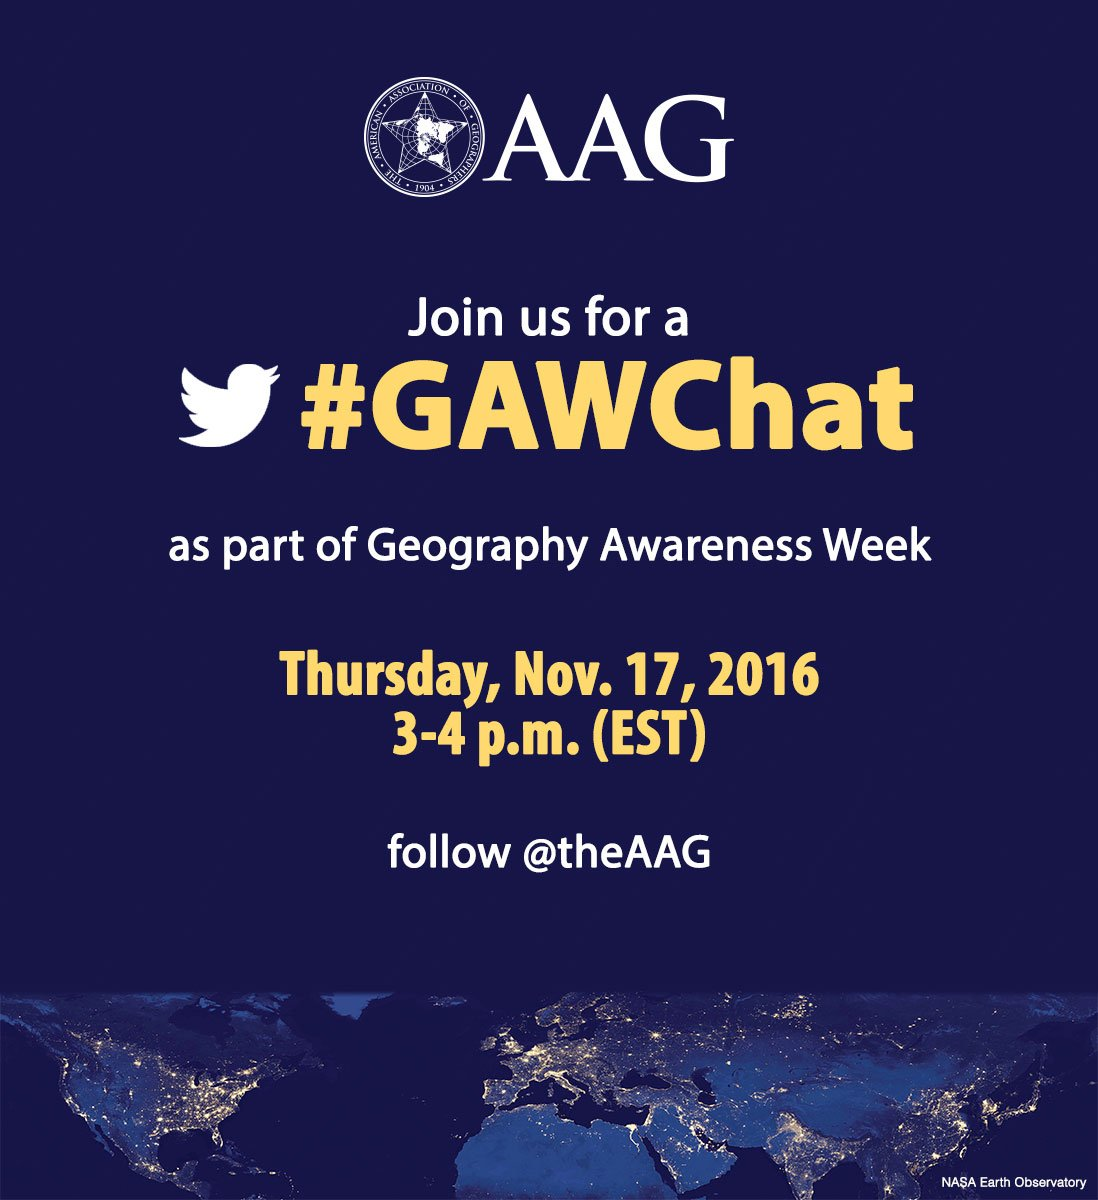 SAVE THE DATE!  - @theAAG will host a #GAWChat on 11/17, 3-4 pm EST as part of #GeographyAwarenessWeek (GAW). https://t.co/Jm9jddDg6M https://t.co/0K6aLJXFAu